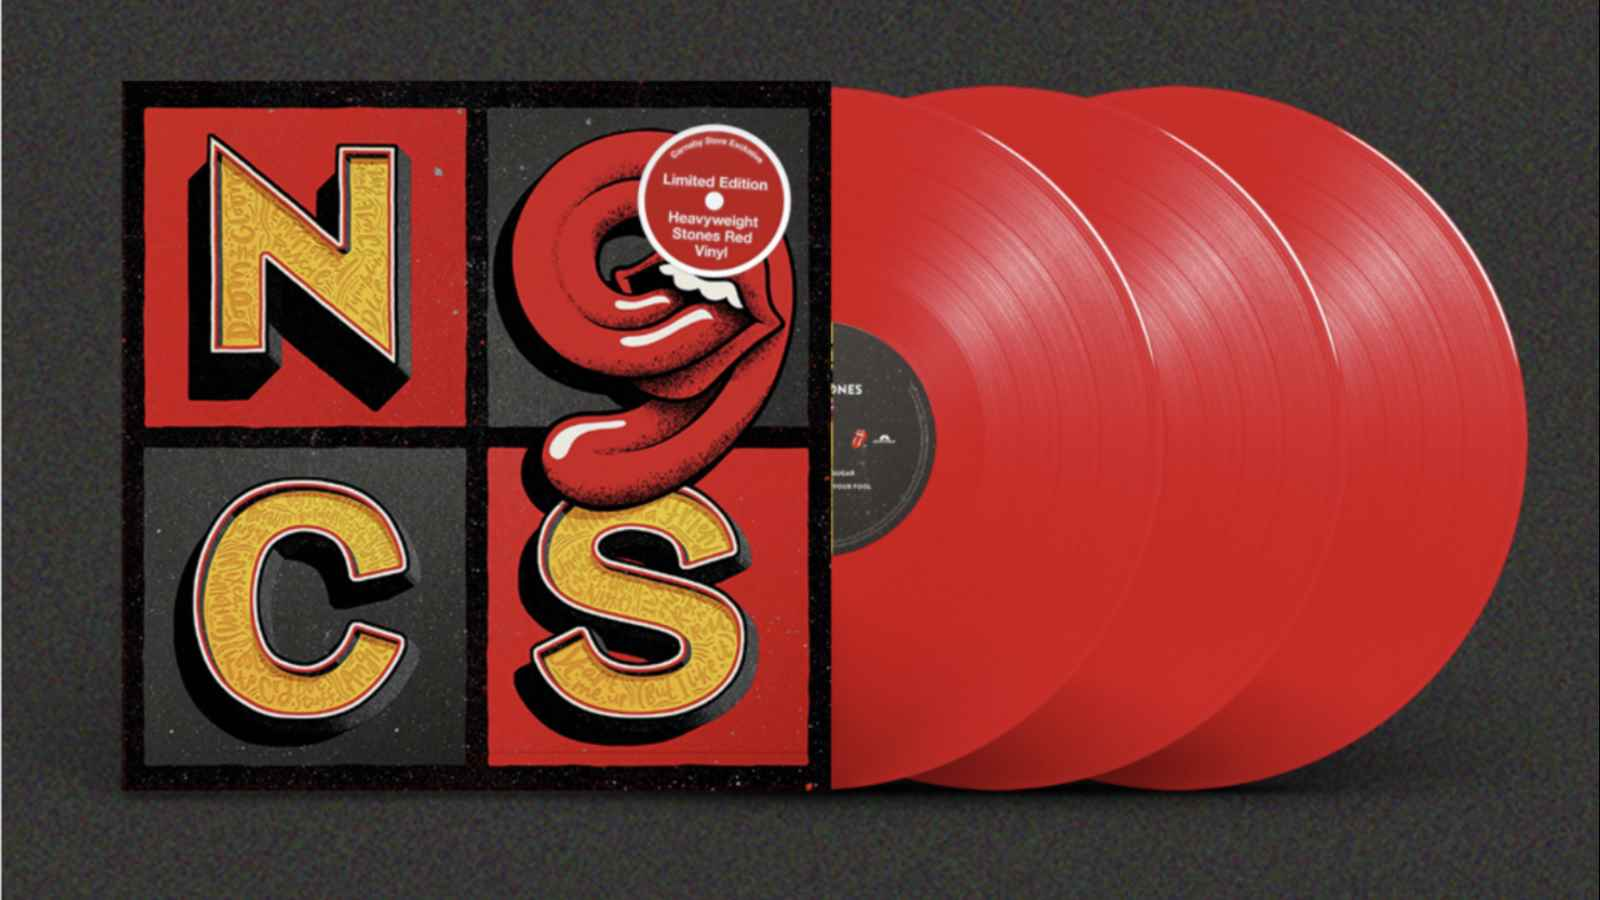 Rolling Stones Announce Limited Edition Red Vinyl